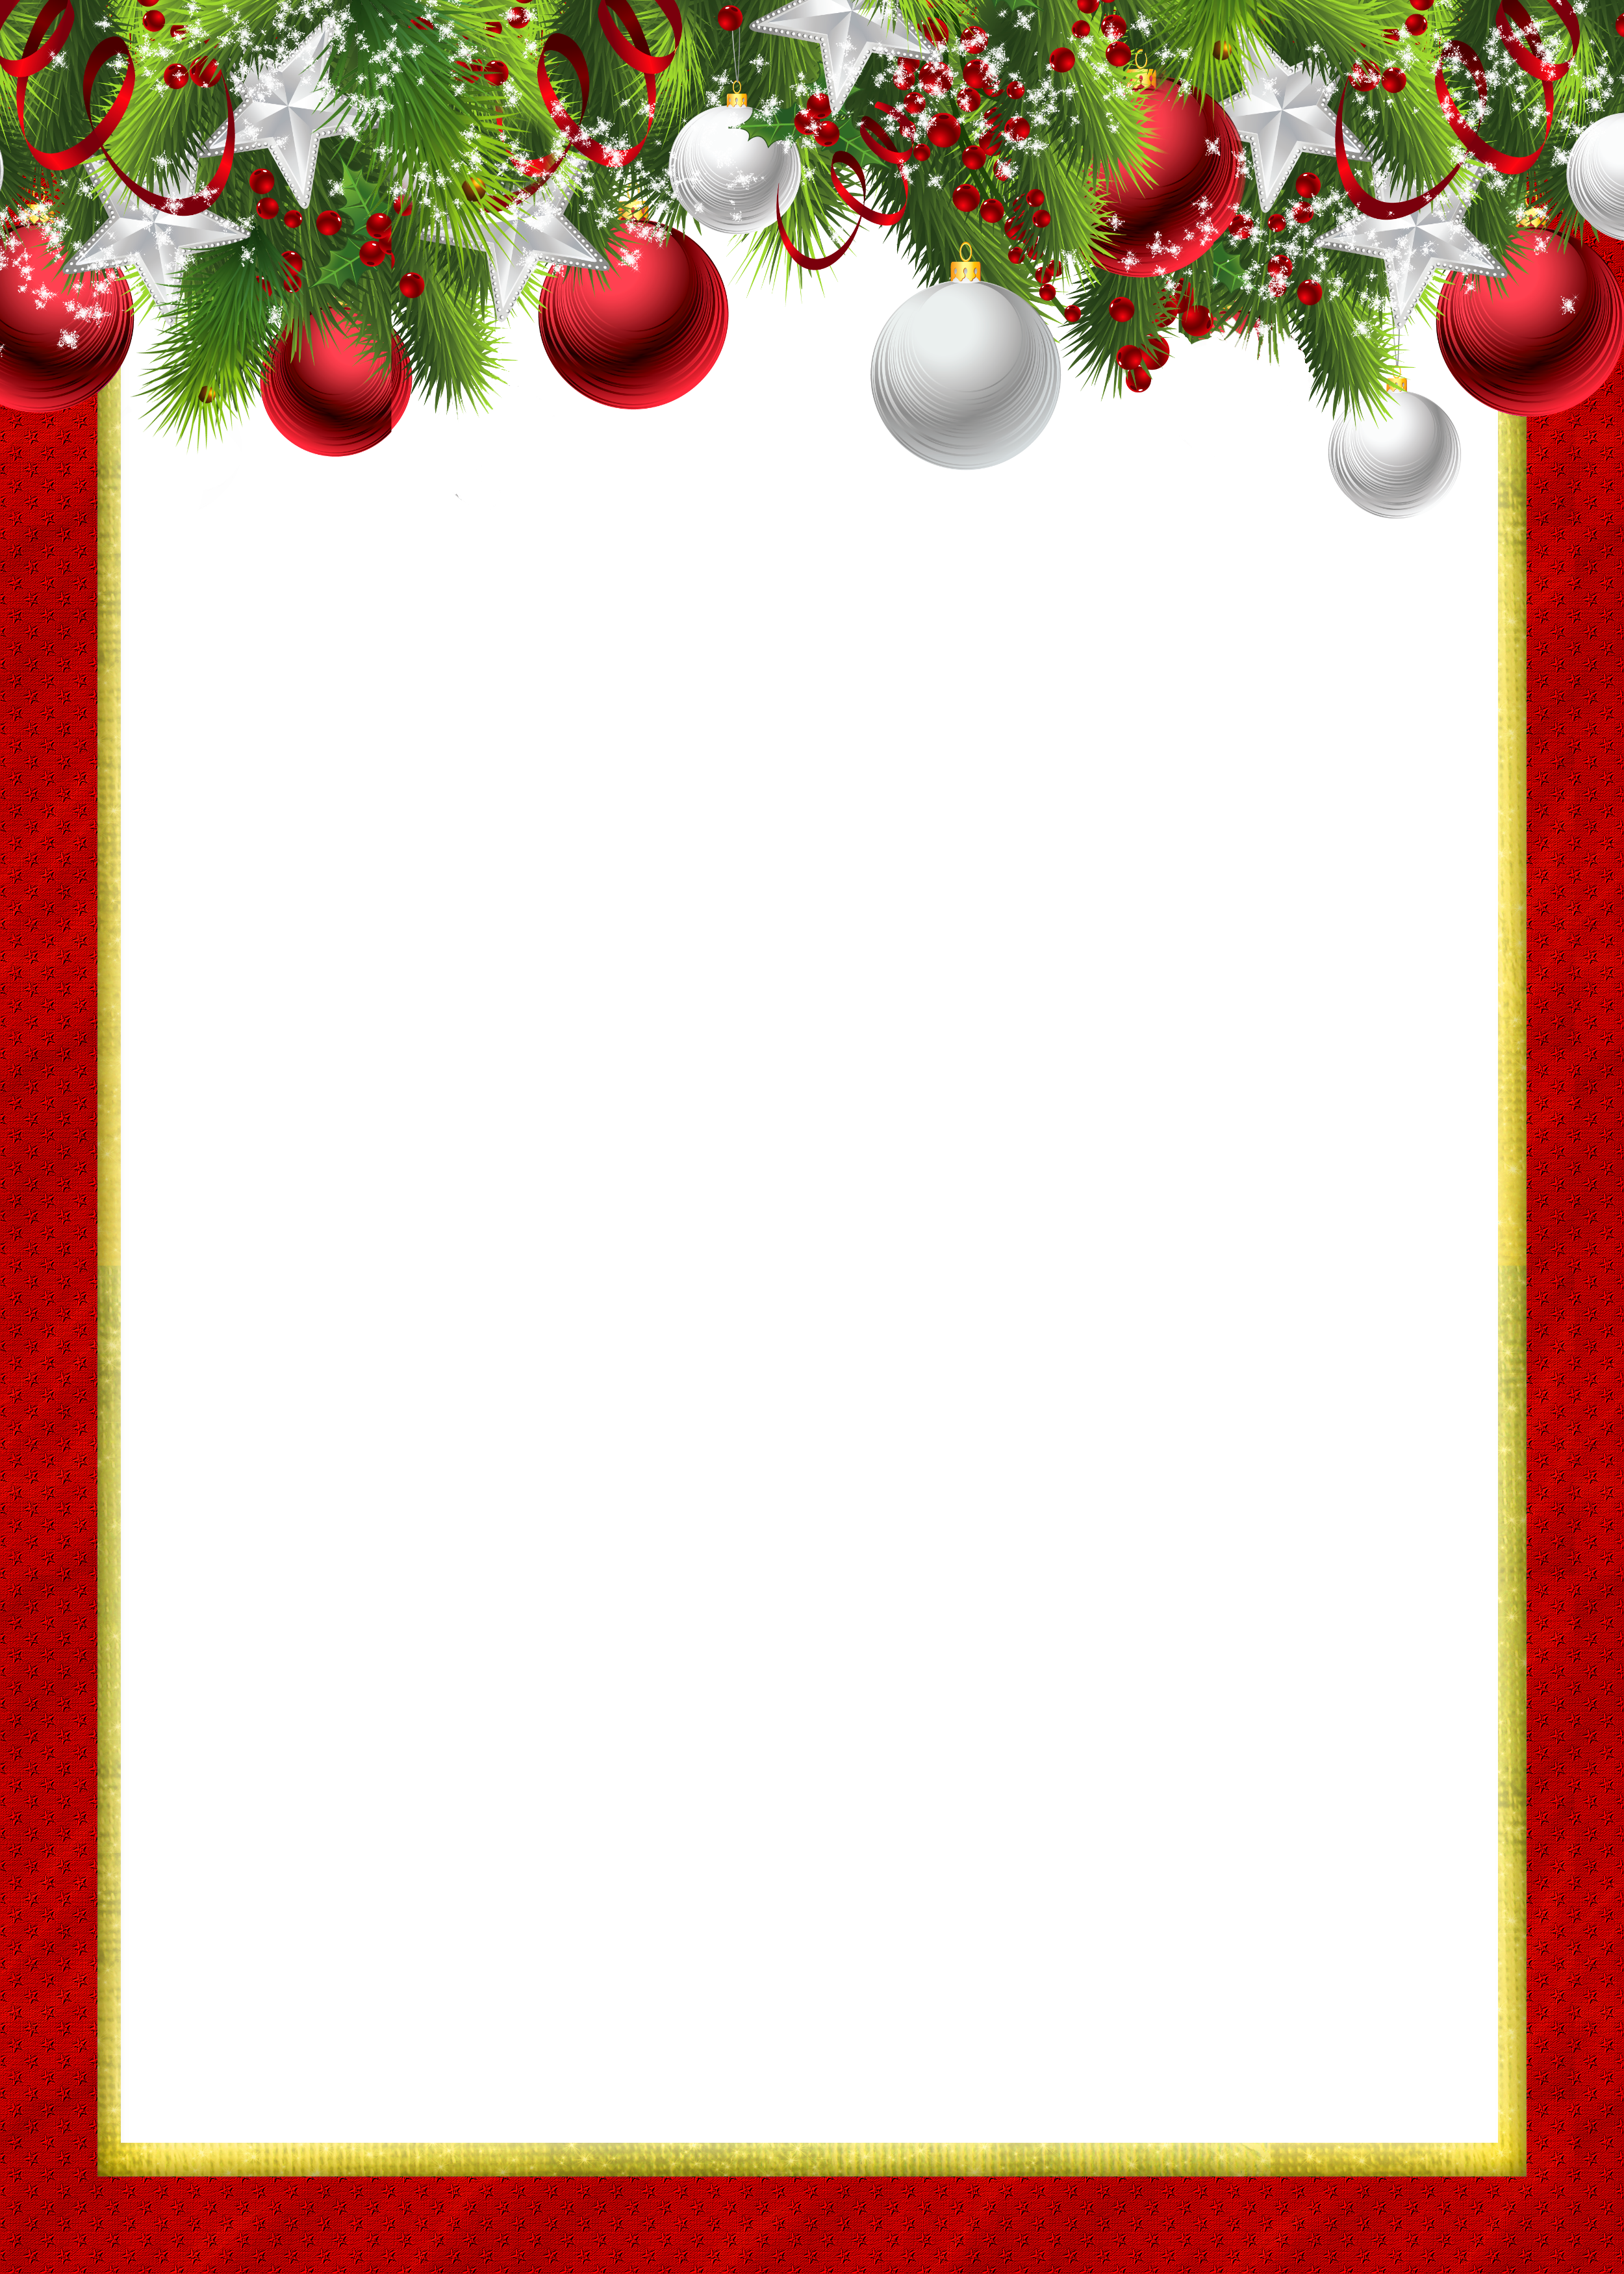 Christmas borders and frames png. Red transparent photo frame